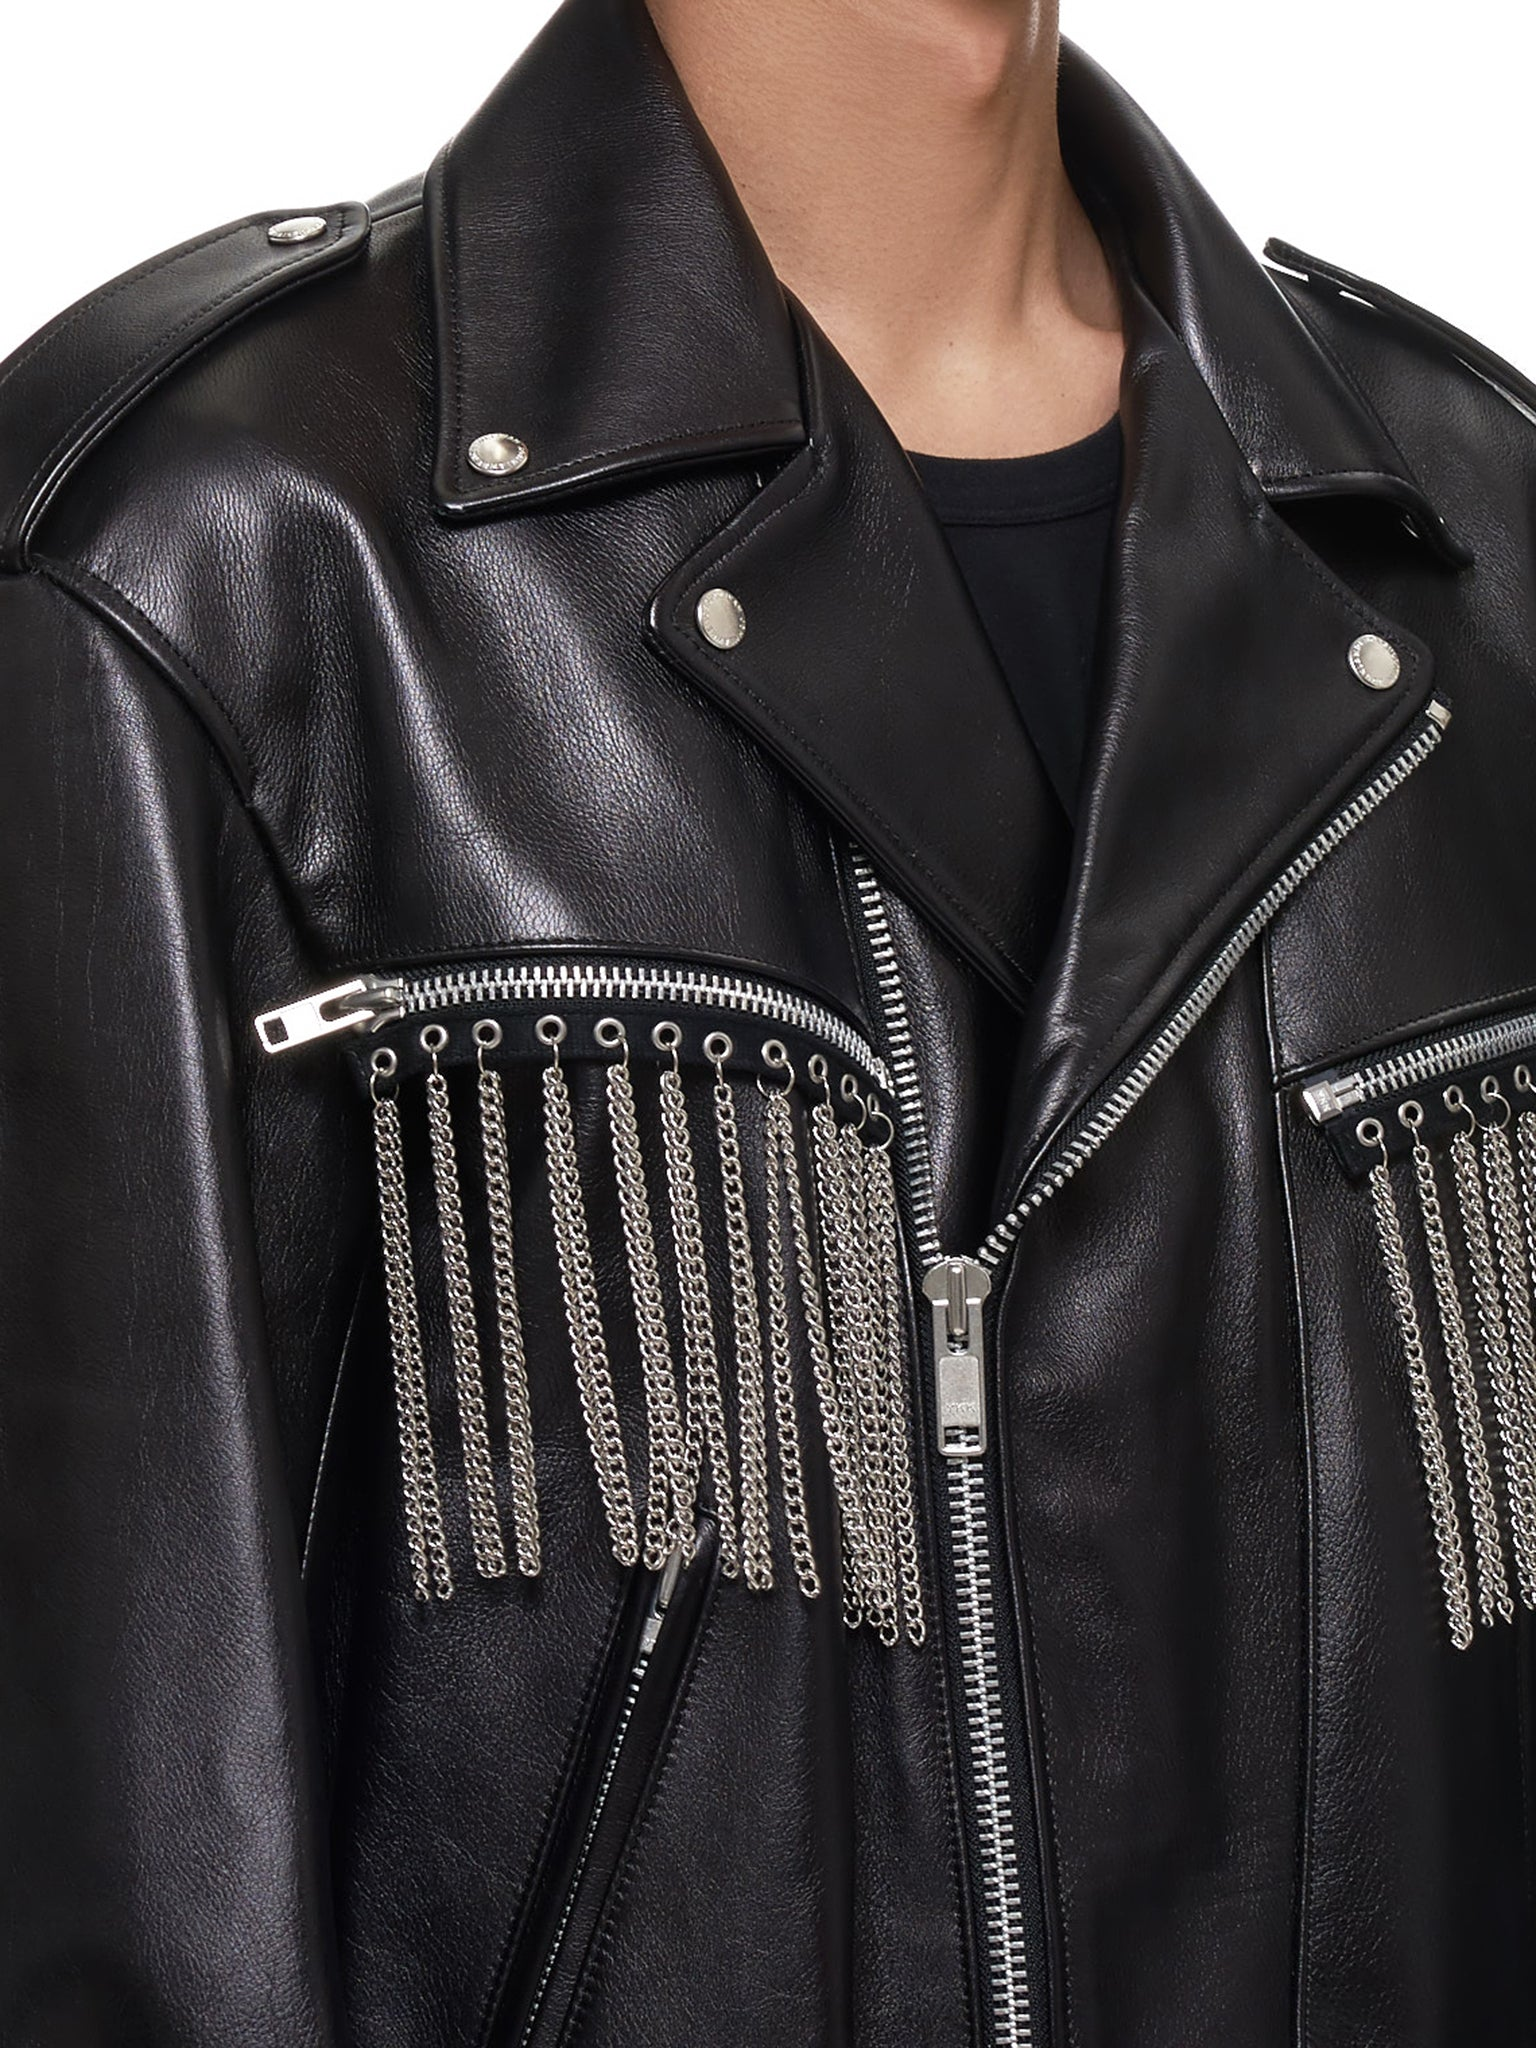 John Lawrence Sullivan Leather Jacket - Hlorenzo Detail 2